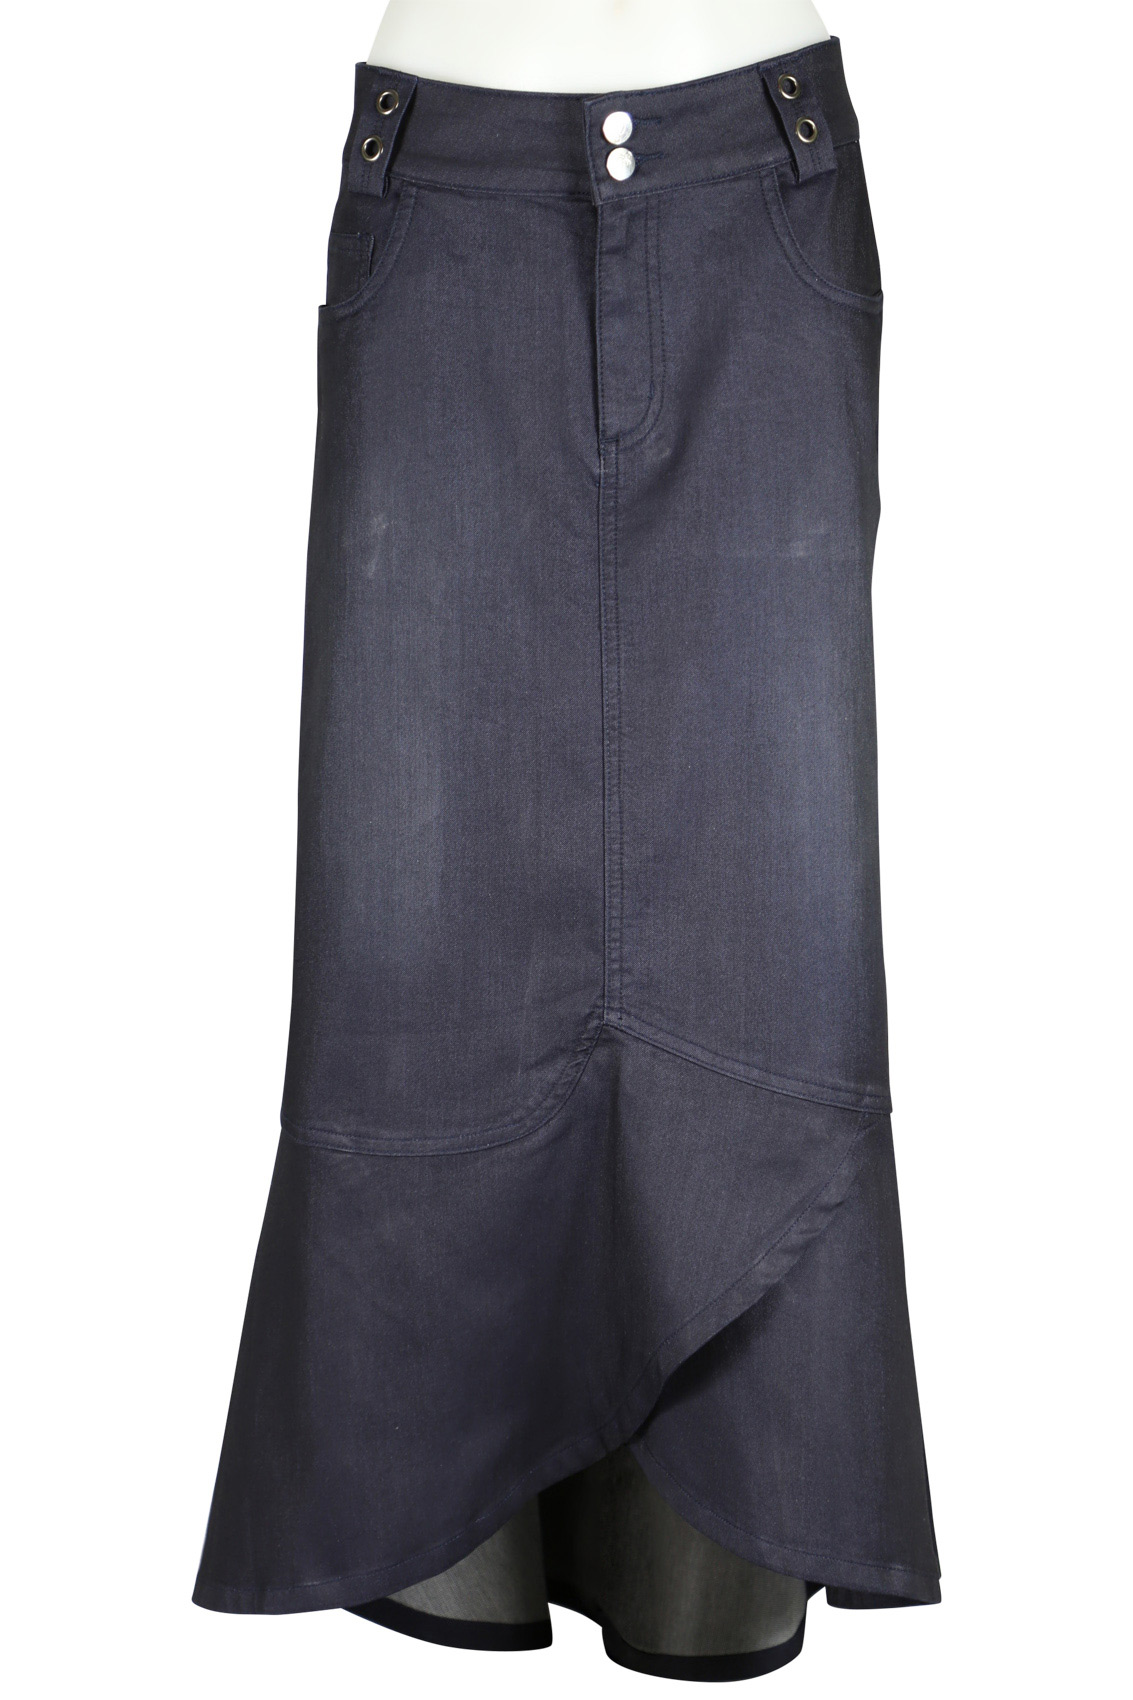 Sweet Grace Long Navy Denim Skirt | Sizes 8-18